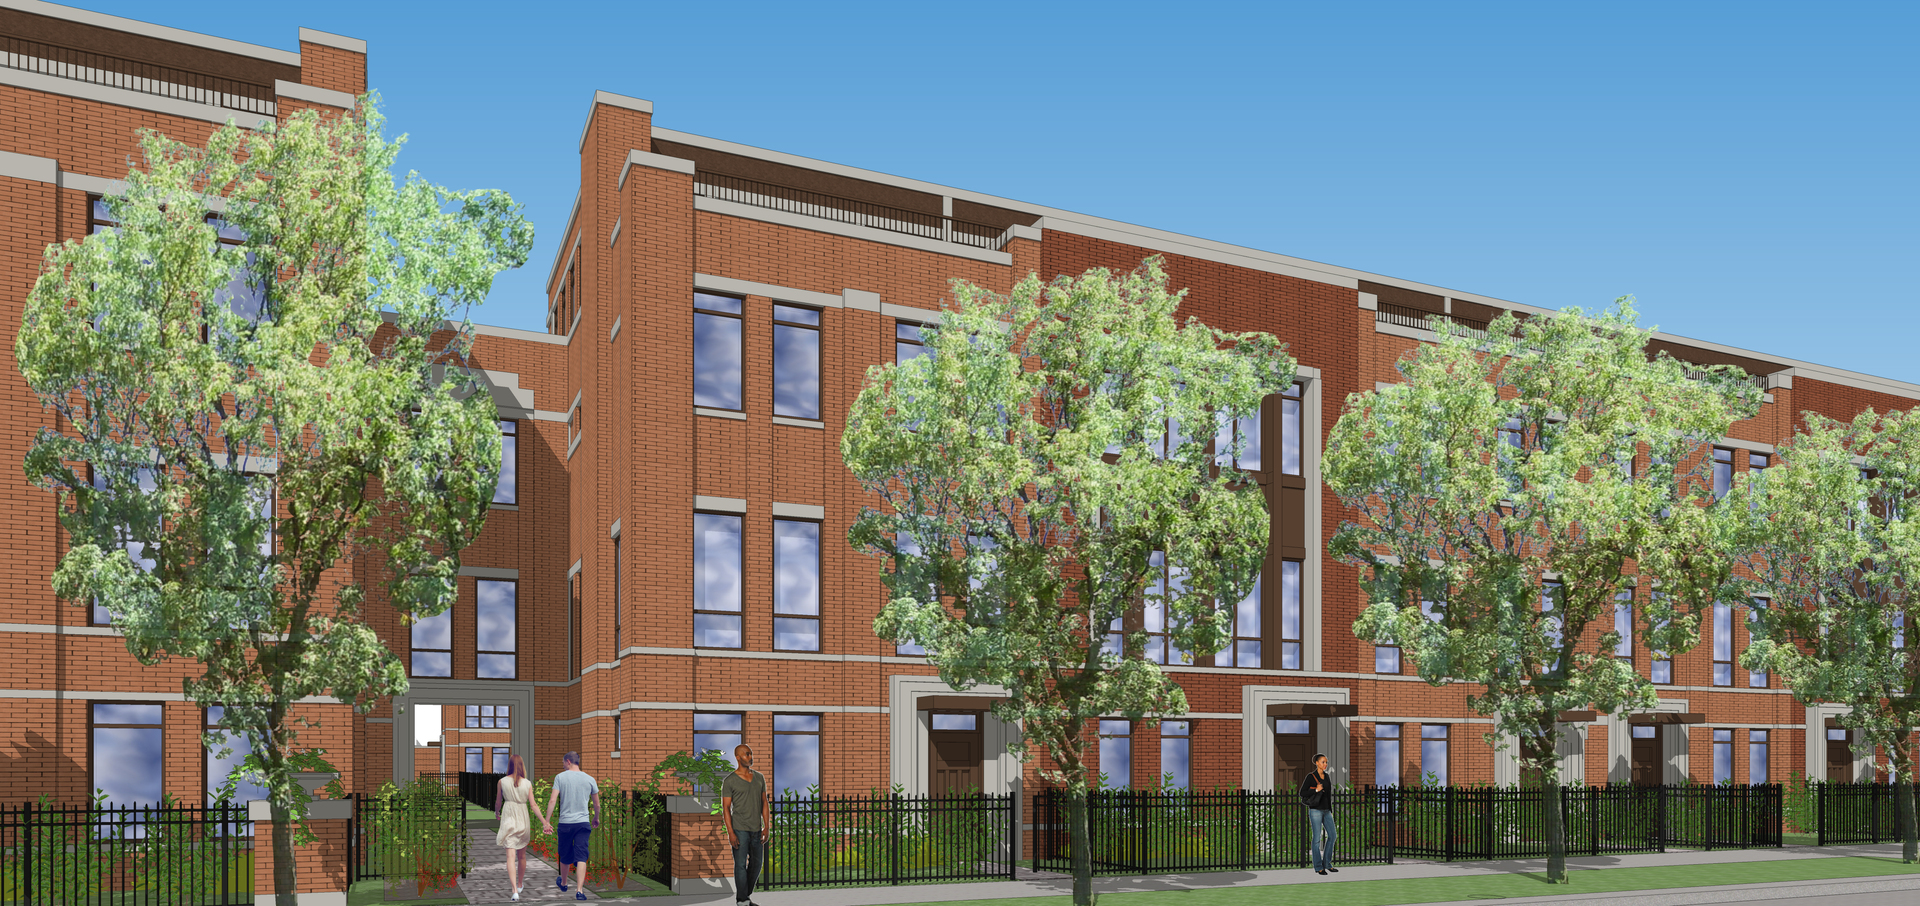 232 East 18th Street, Chicago-near South Side, IL 60616